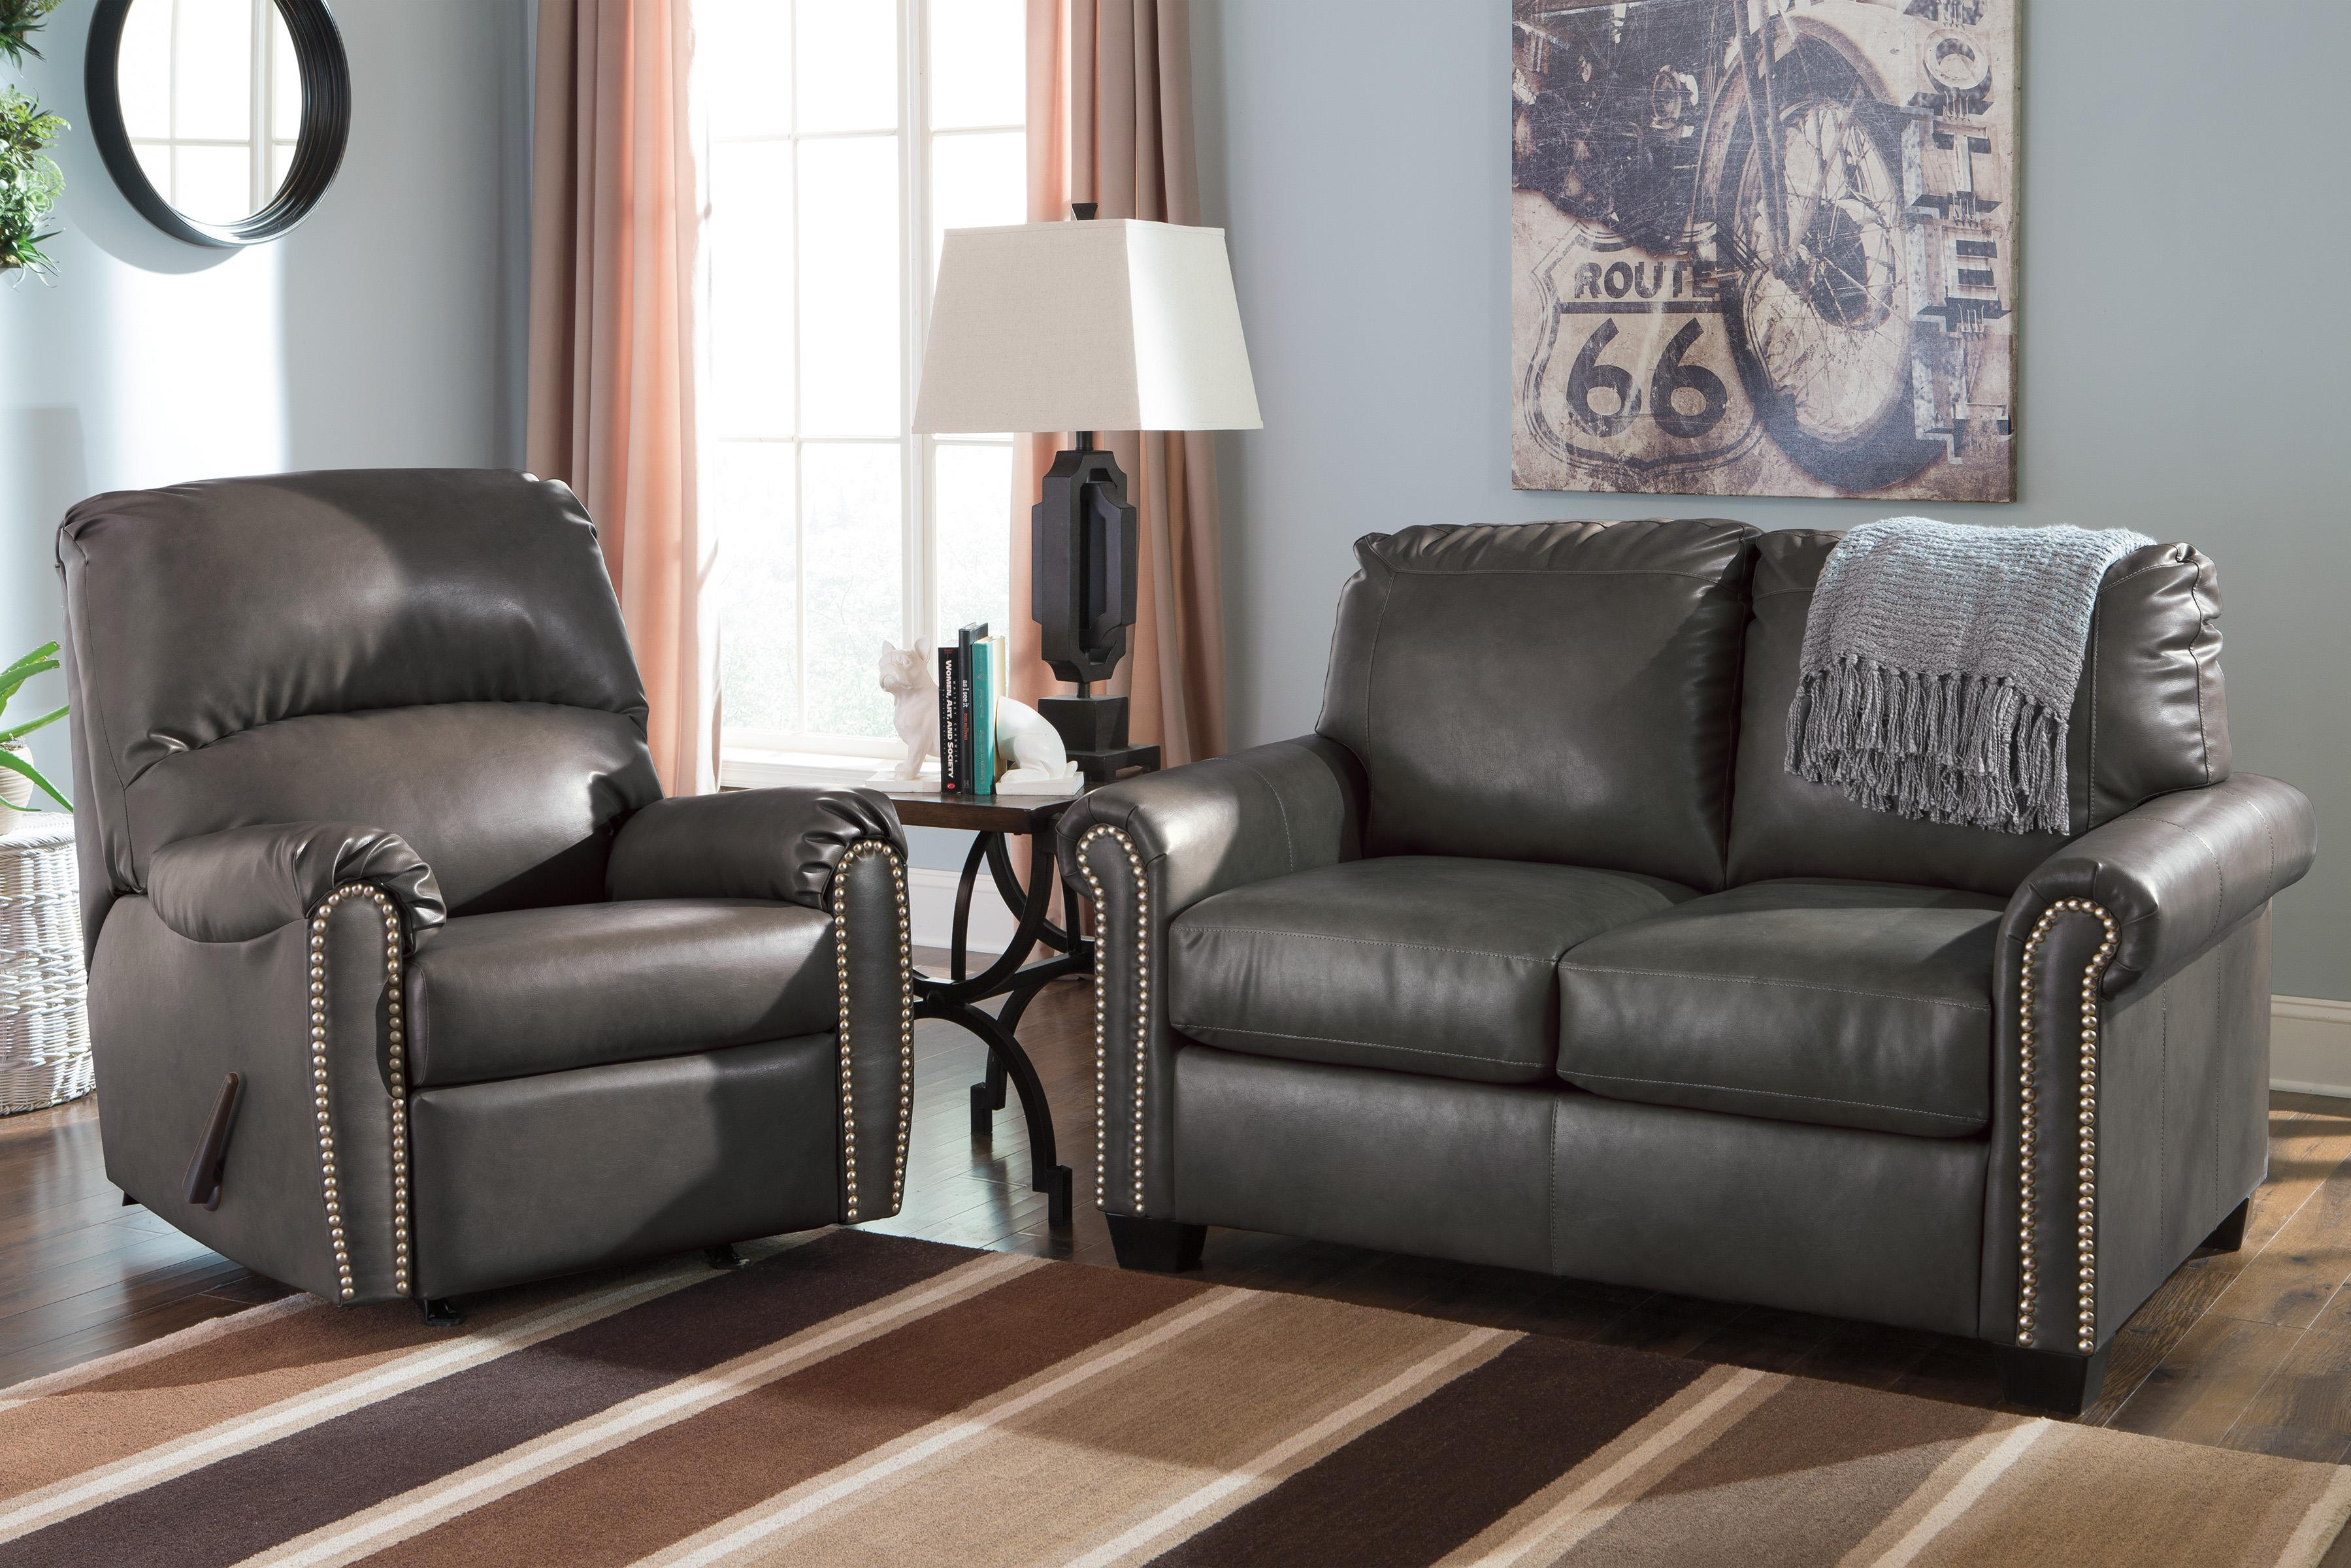 Signature Design by Ashley Lottie DuraBlend® Stationary Living Room Group - Item Number: 38001 Living Room Group 2